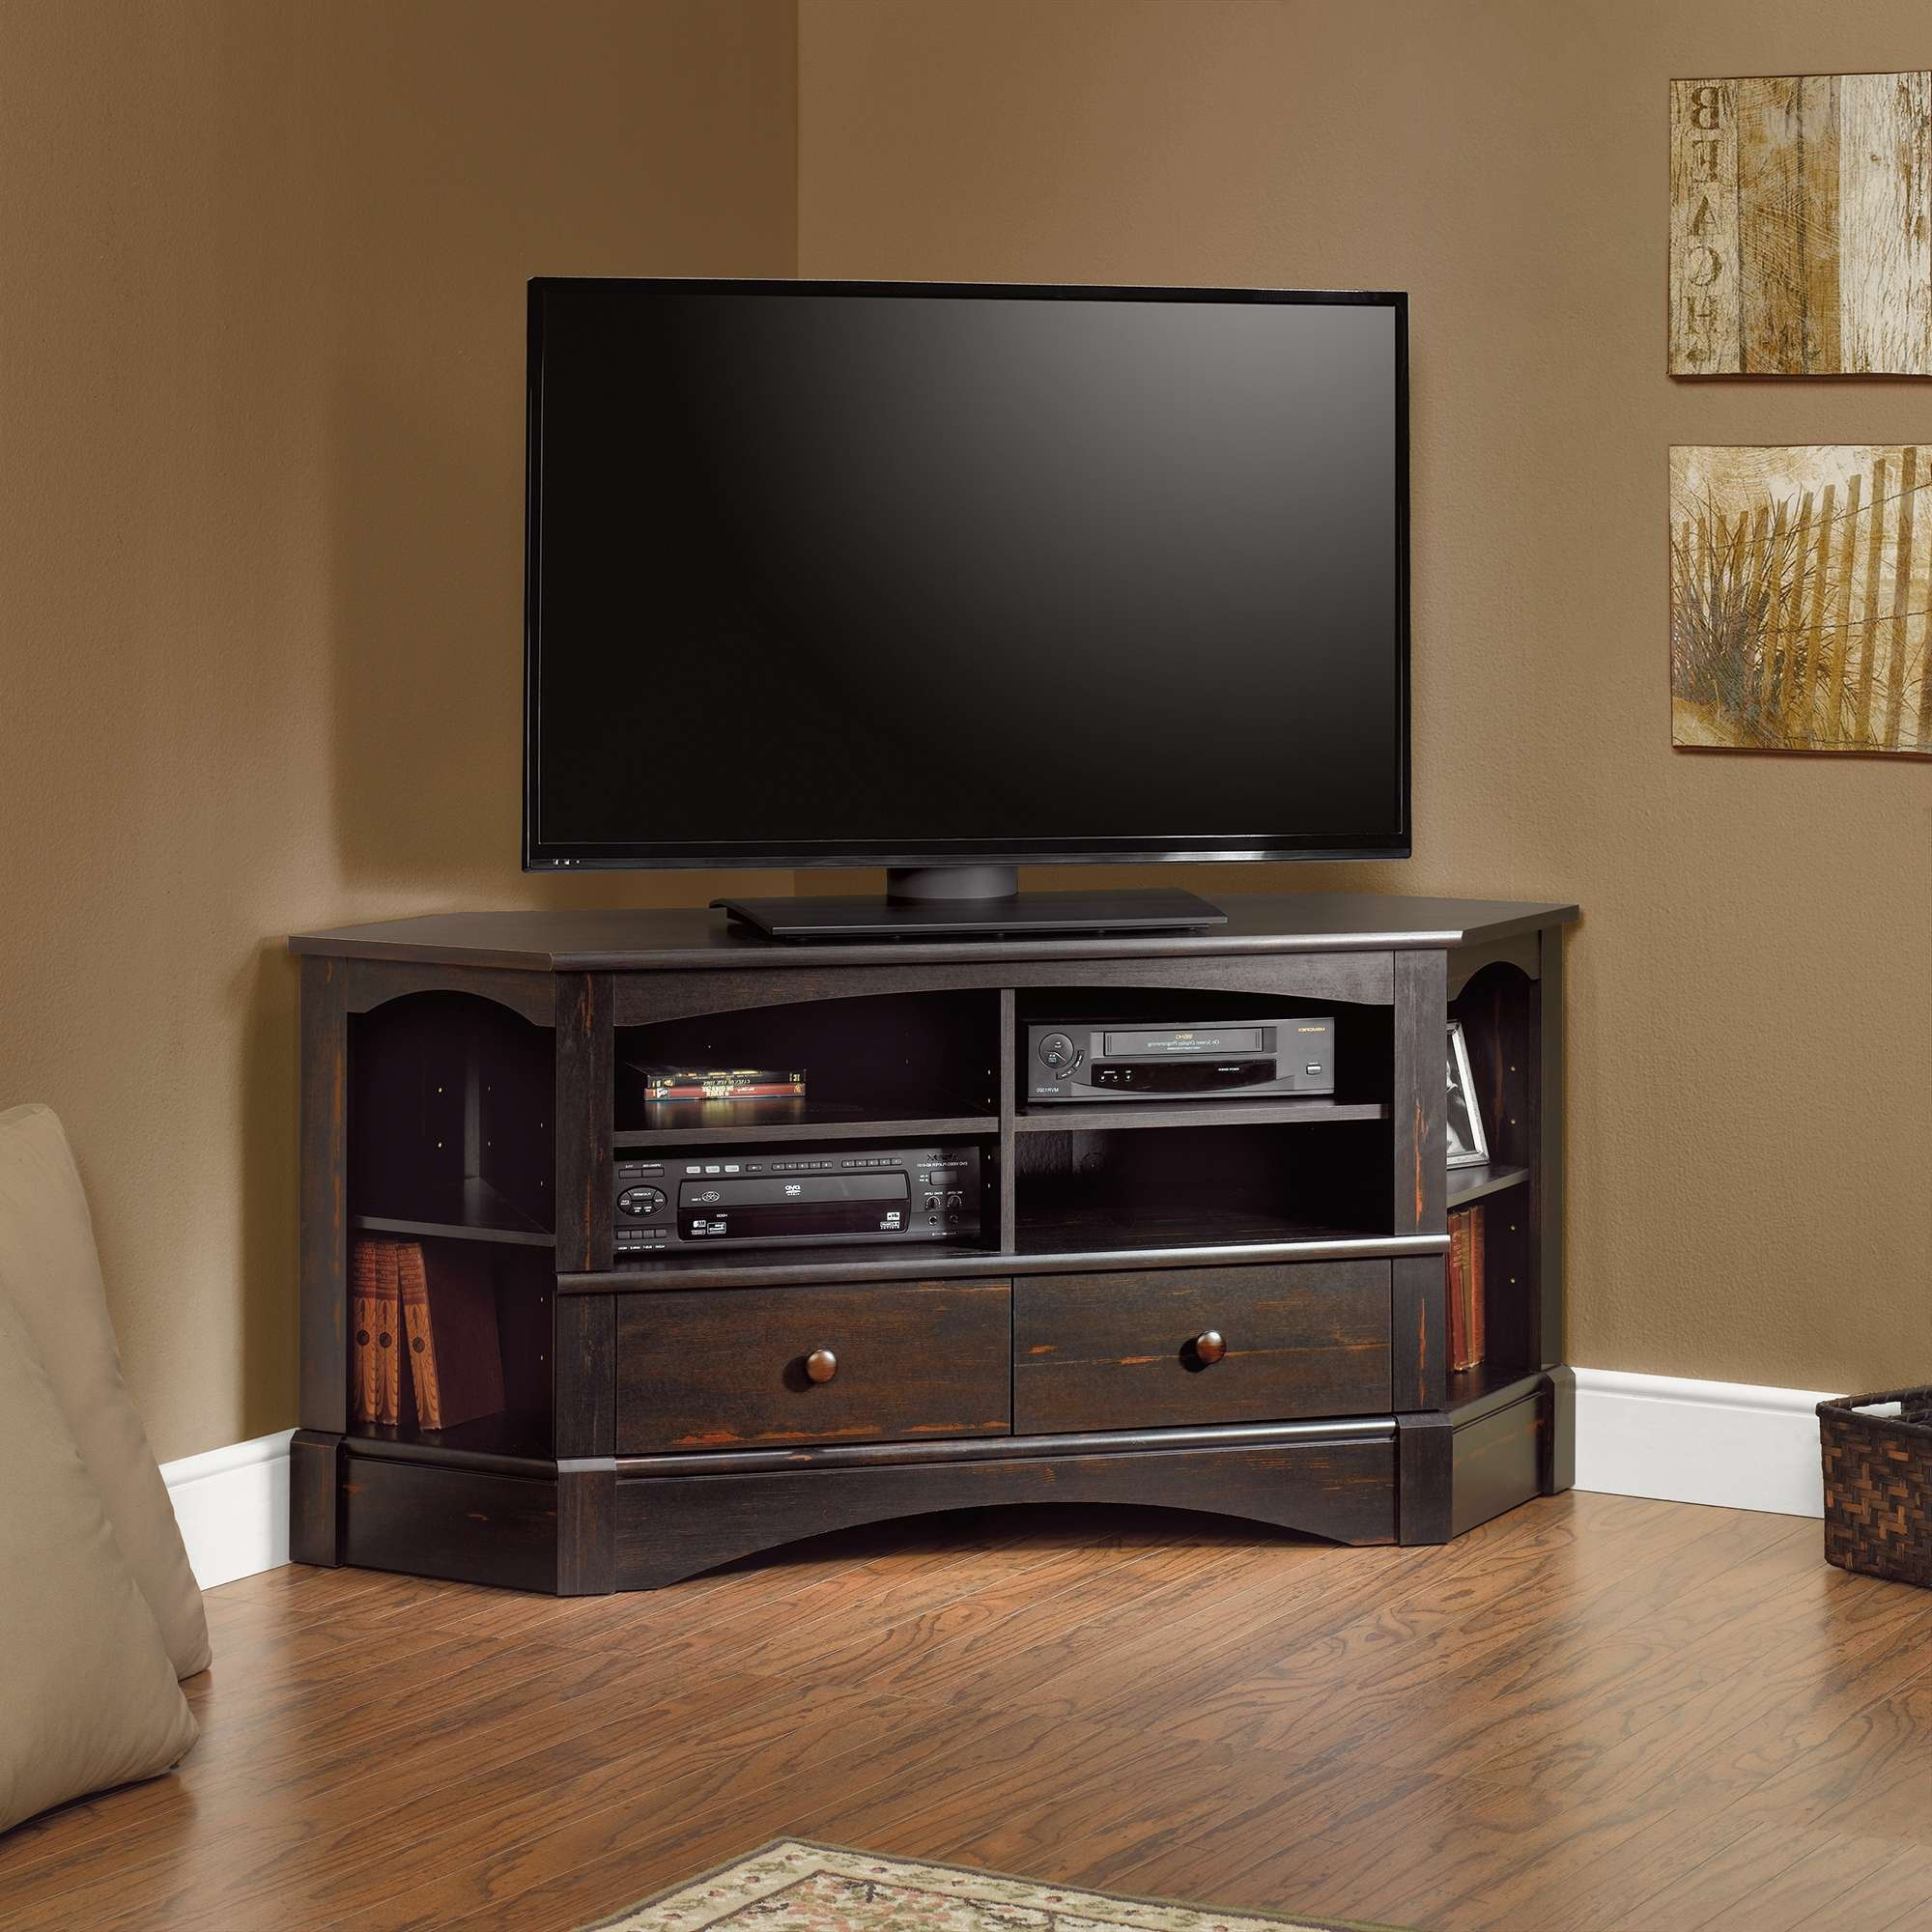 Corner Tv Stands For Flat Screen Tvs With Regard To Corner Tv Cabinets For Flat Screen (View 8 of 20)